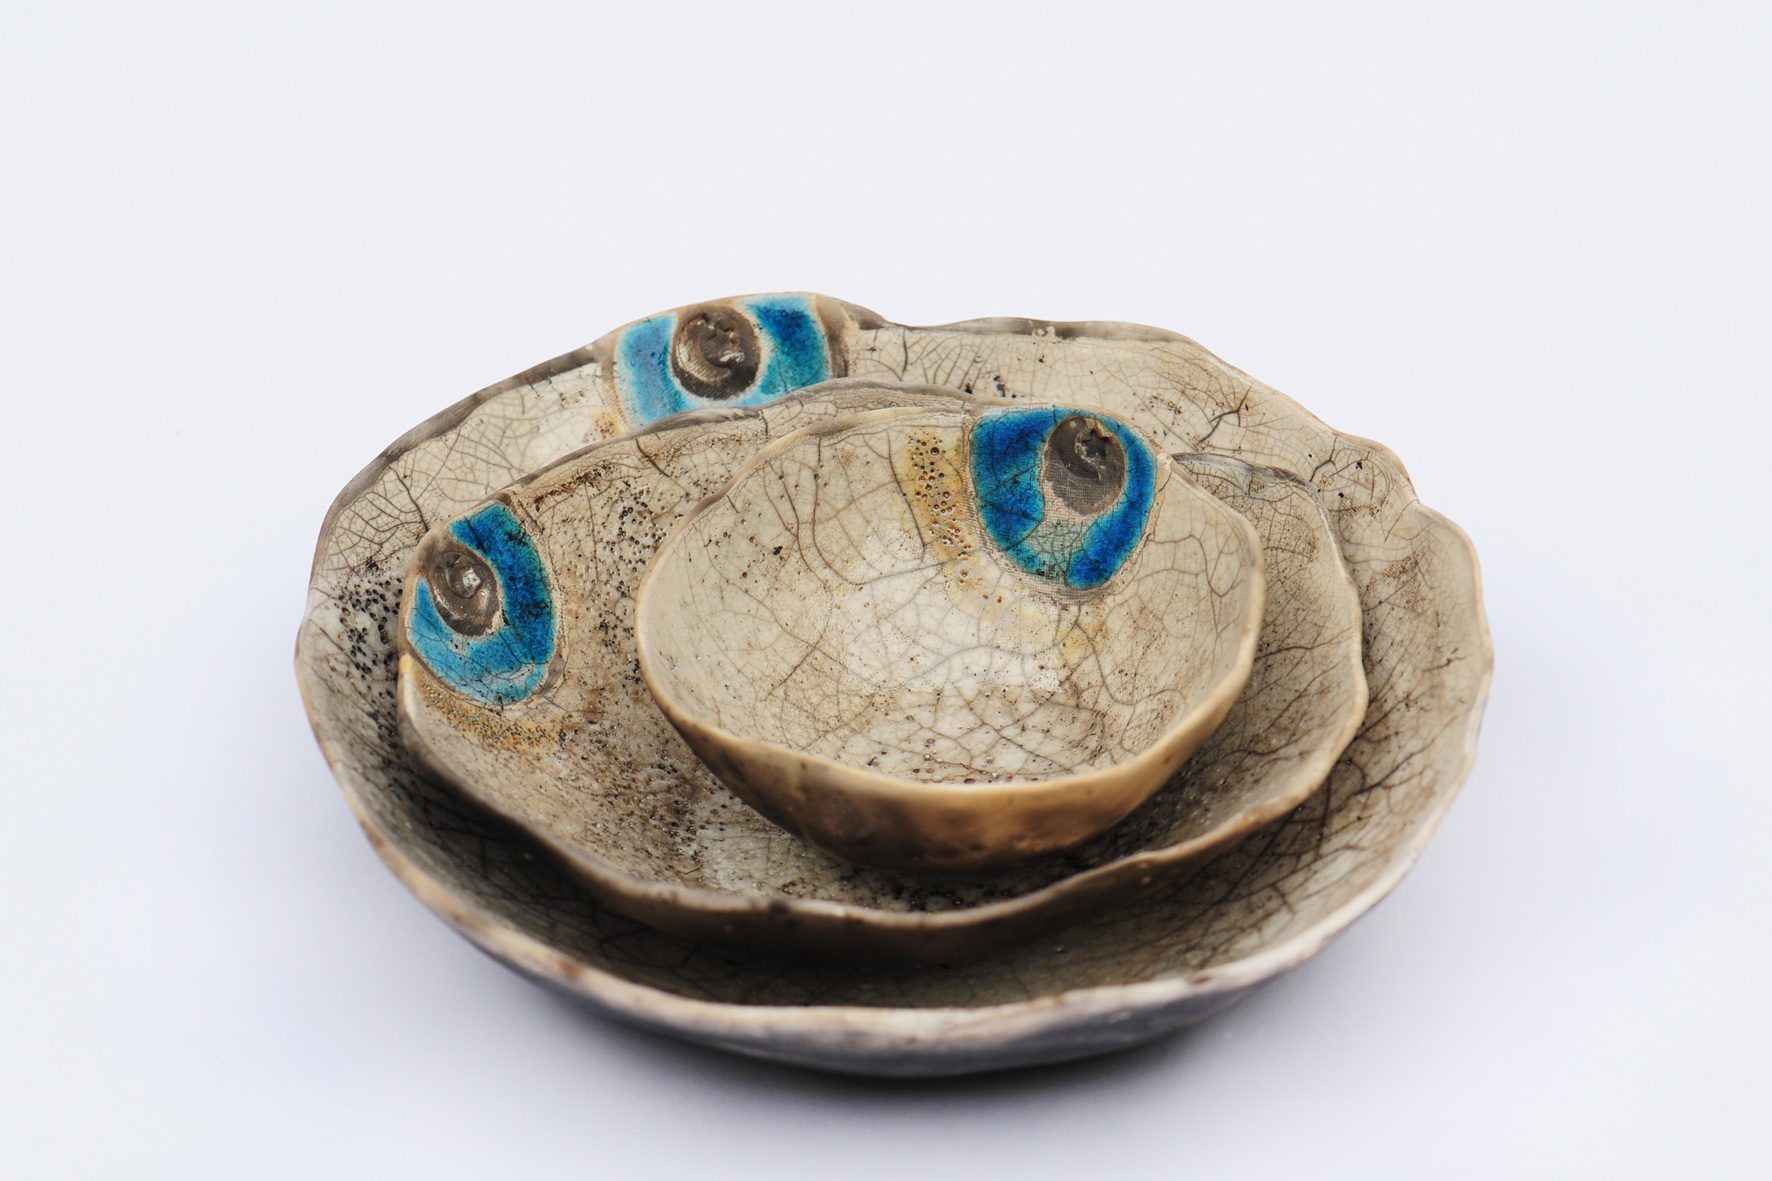 Decorative White Ceramic Bowls Set Of Three Sold By Serap Yurdaer Ceramics